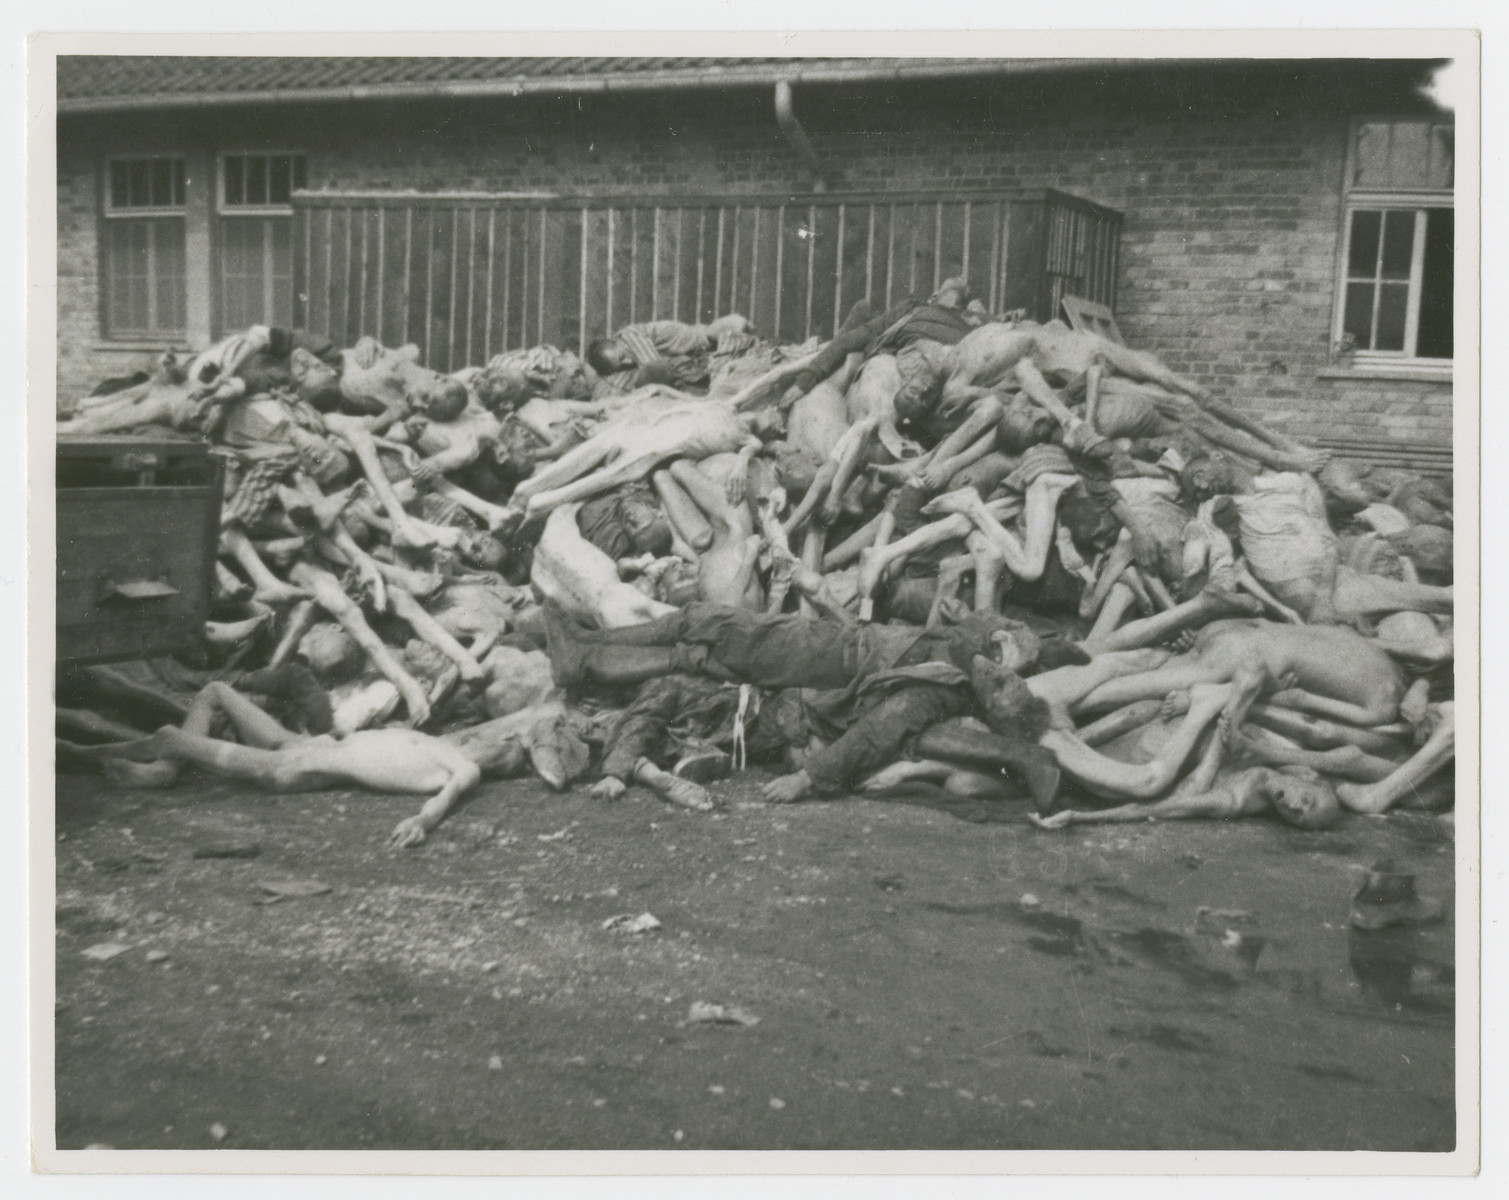 Corpses stacked outside the Dachau crematorium, with [what looks like a German guard] lying in the front.